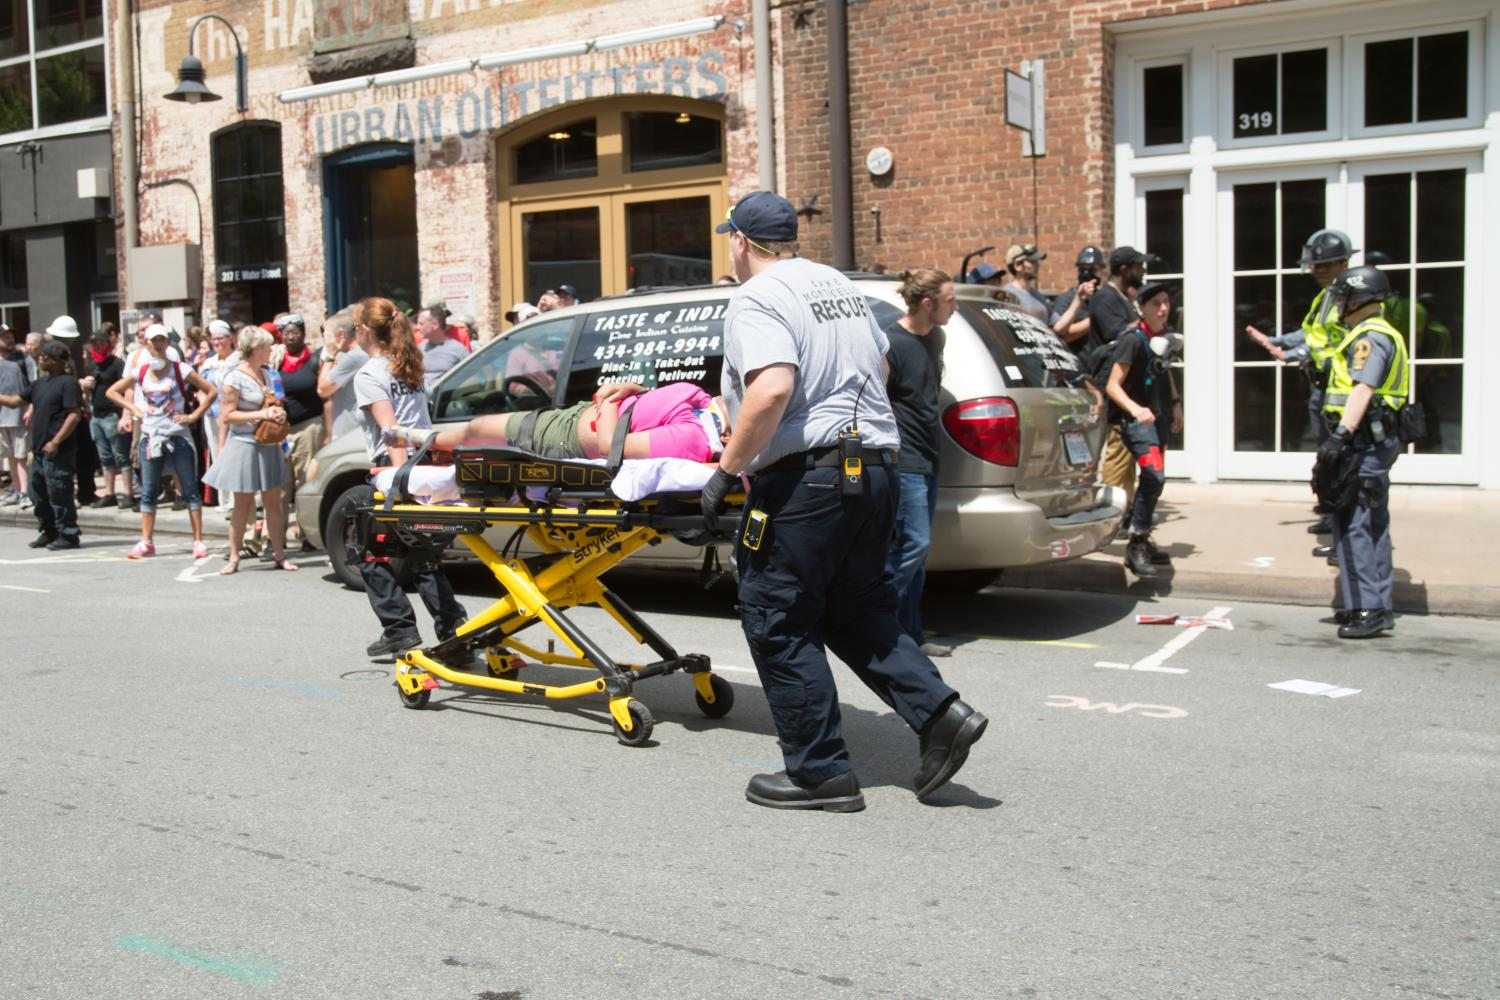 An injured person Saturday in Charlottesville, Virginia, after a white supremacist rally became violent. Local officials have denounced the rally and President Donald Trump's rhetoric.